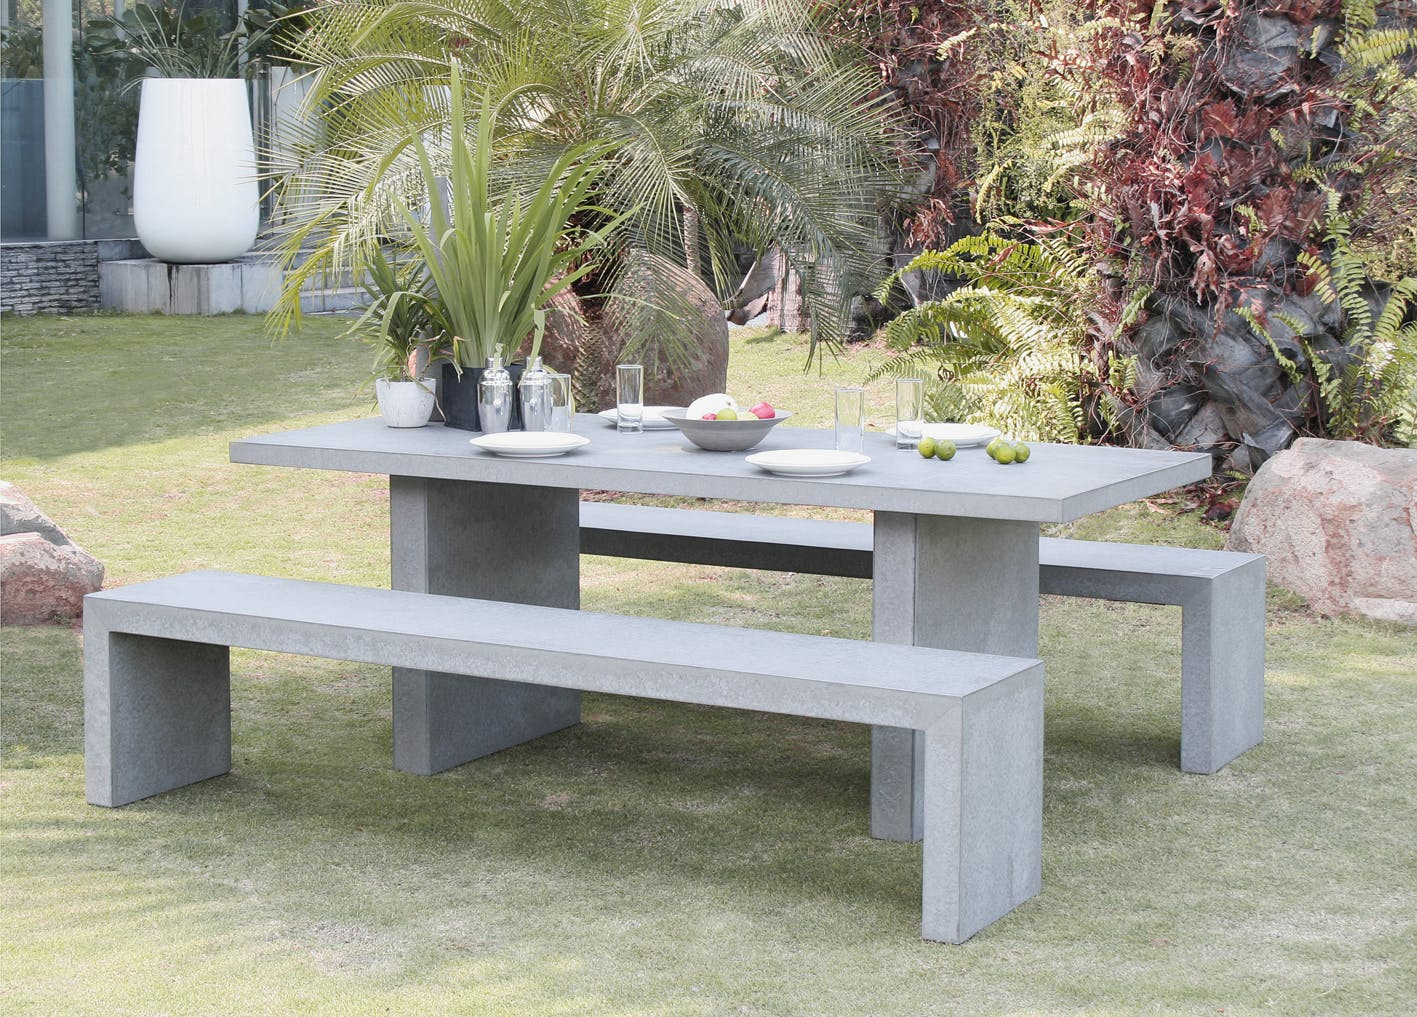 Salon de jardin Aspect Béton Table 200x90x75cm + 2 bancs 200x40x45cm HERCULE